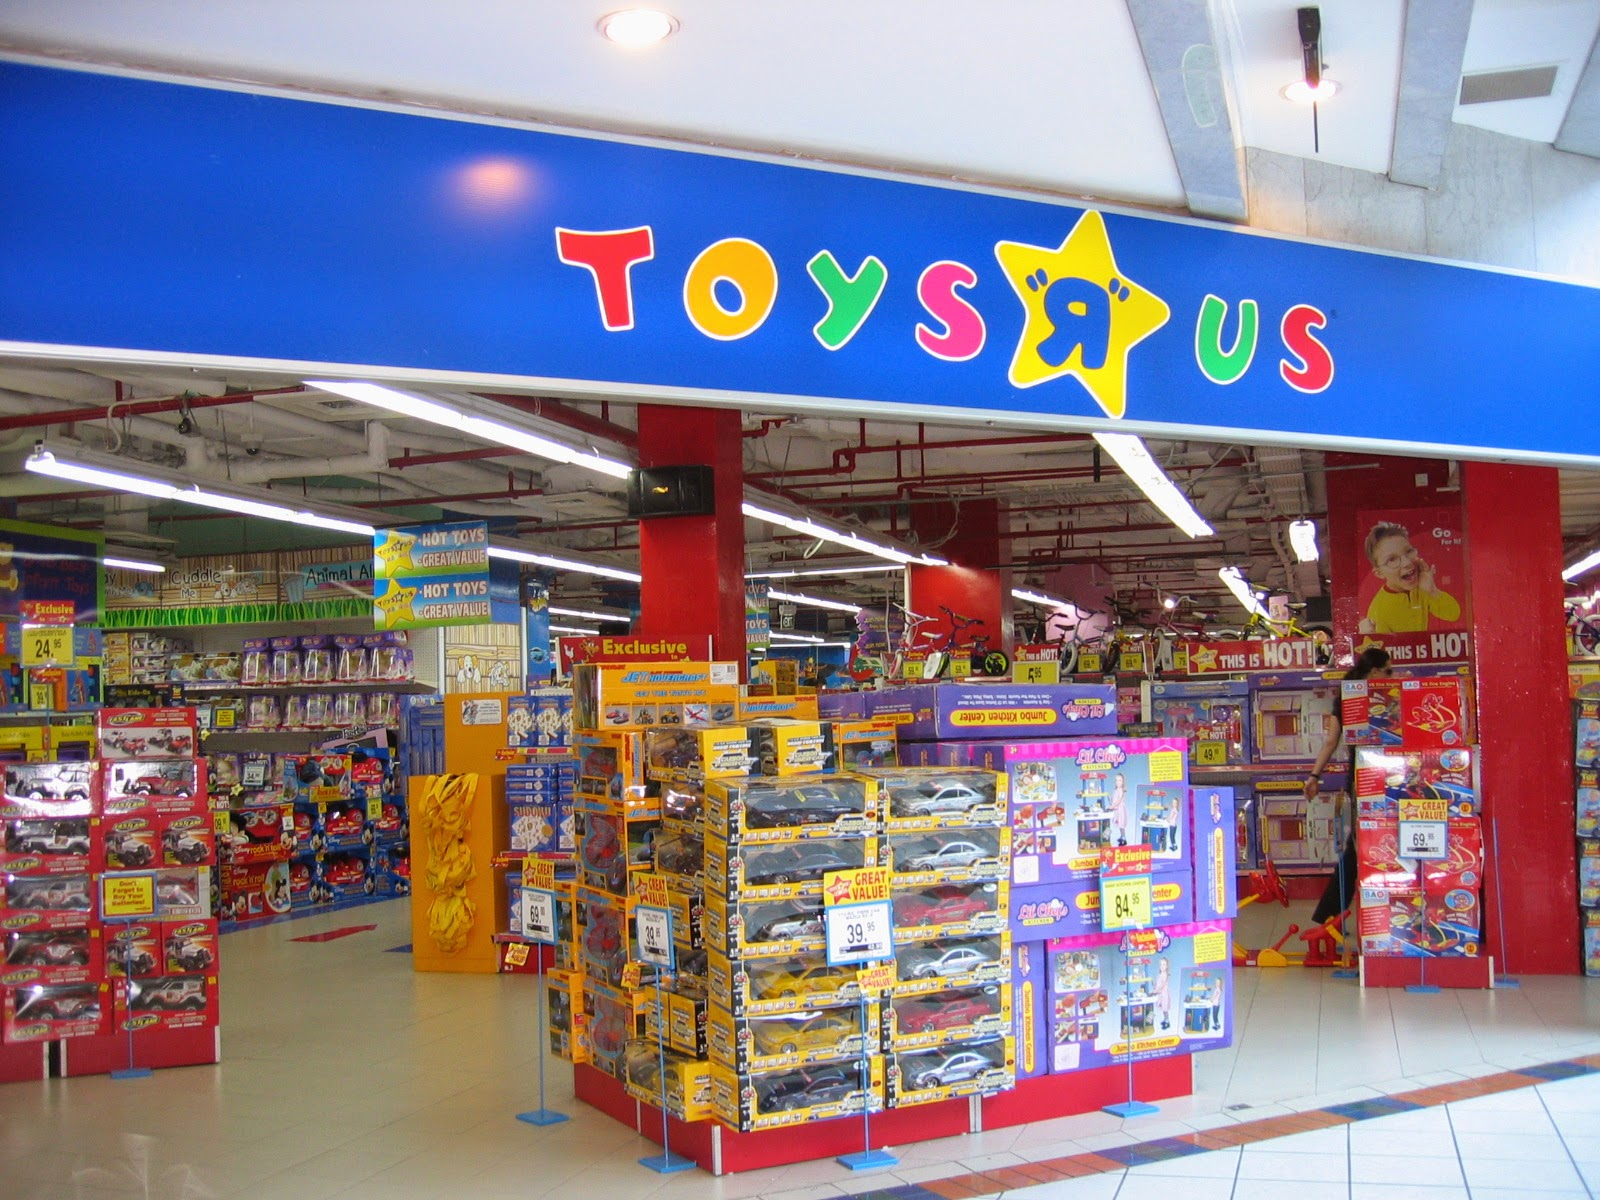 Food And Cooking At Toys R Us : Online baby games: basic ideas for buying toys for babies and baby games